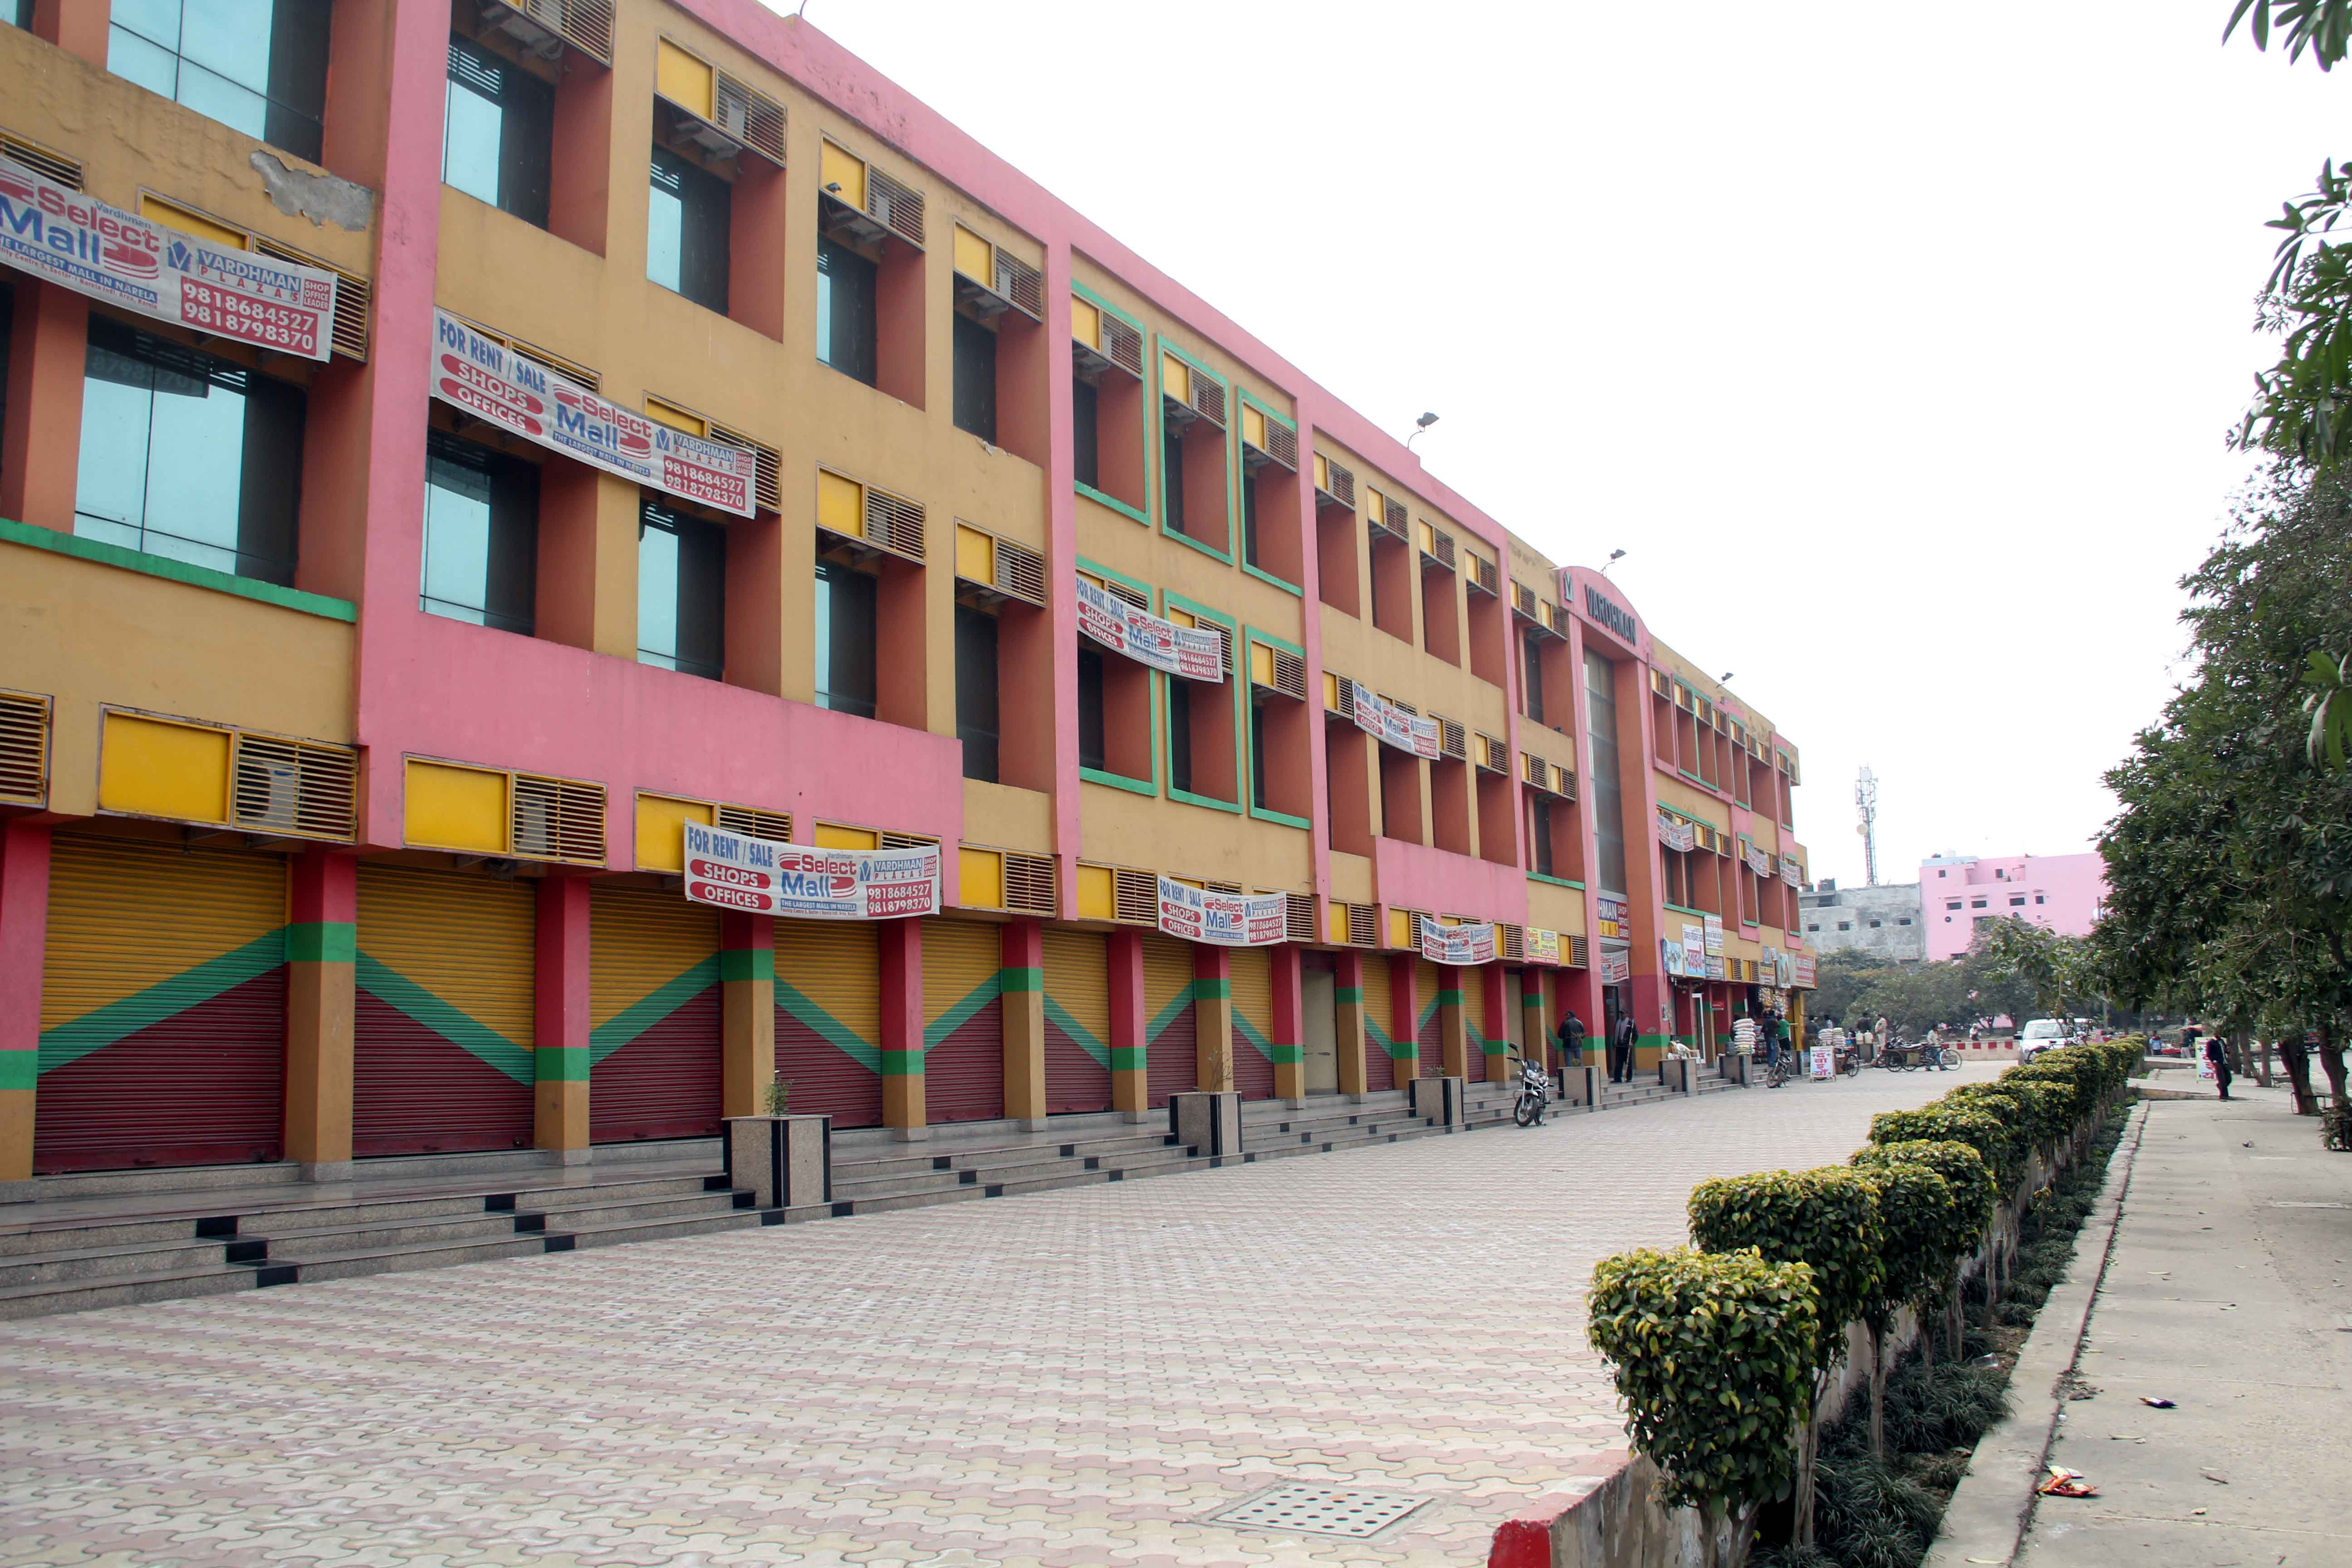 Vardhman Mall | Commercial property for sale In Sector 5, Bawana